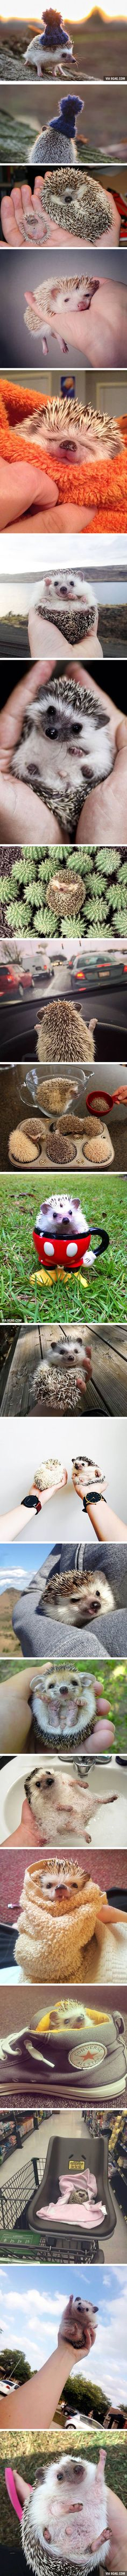 I start to fall in love with hedgehogs - 9GAG